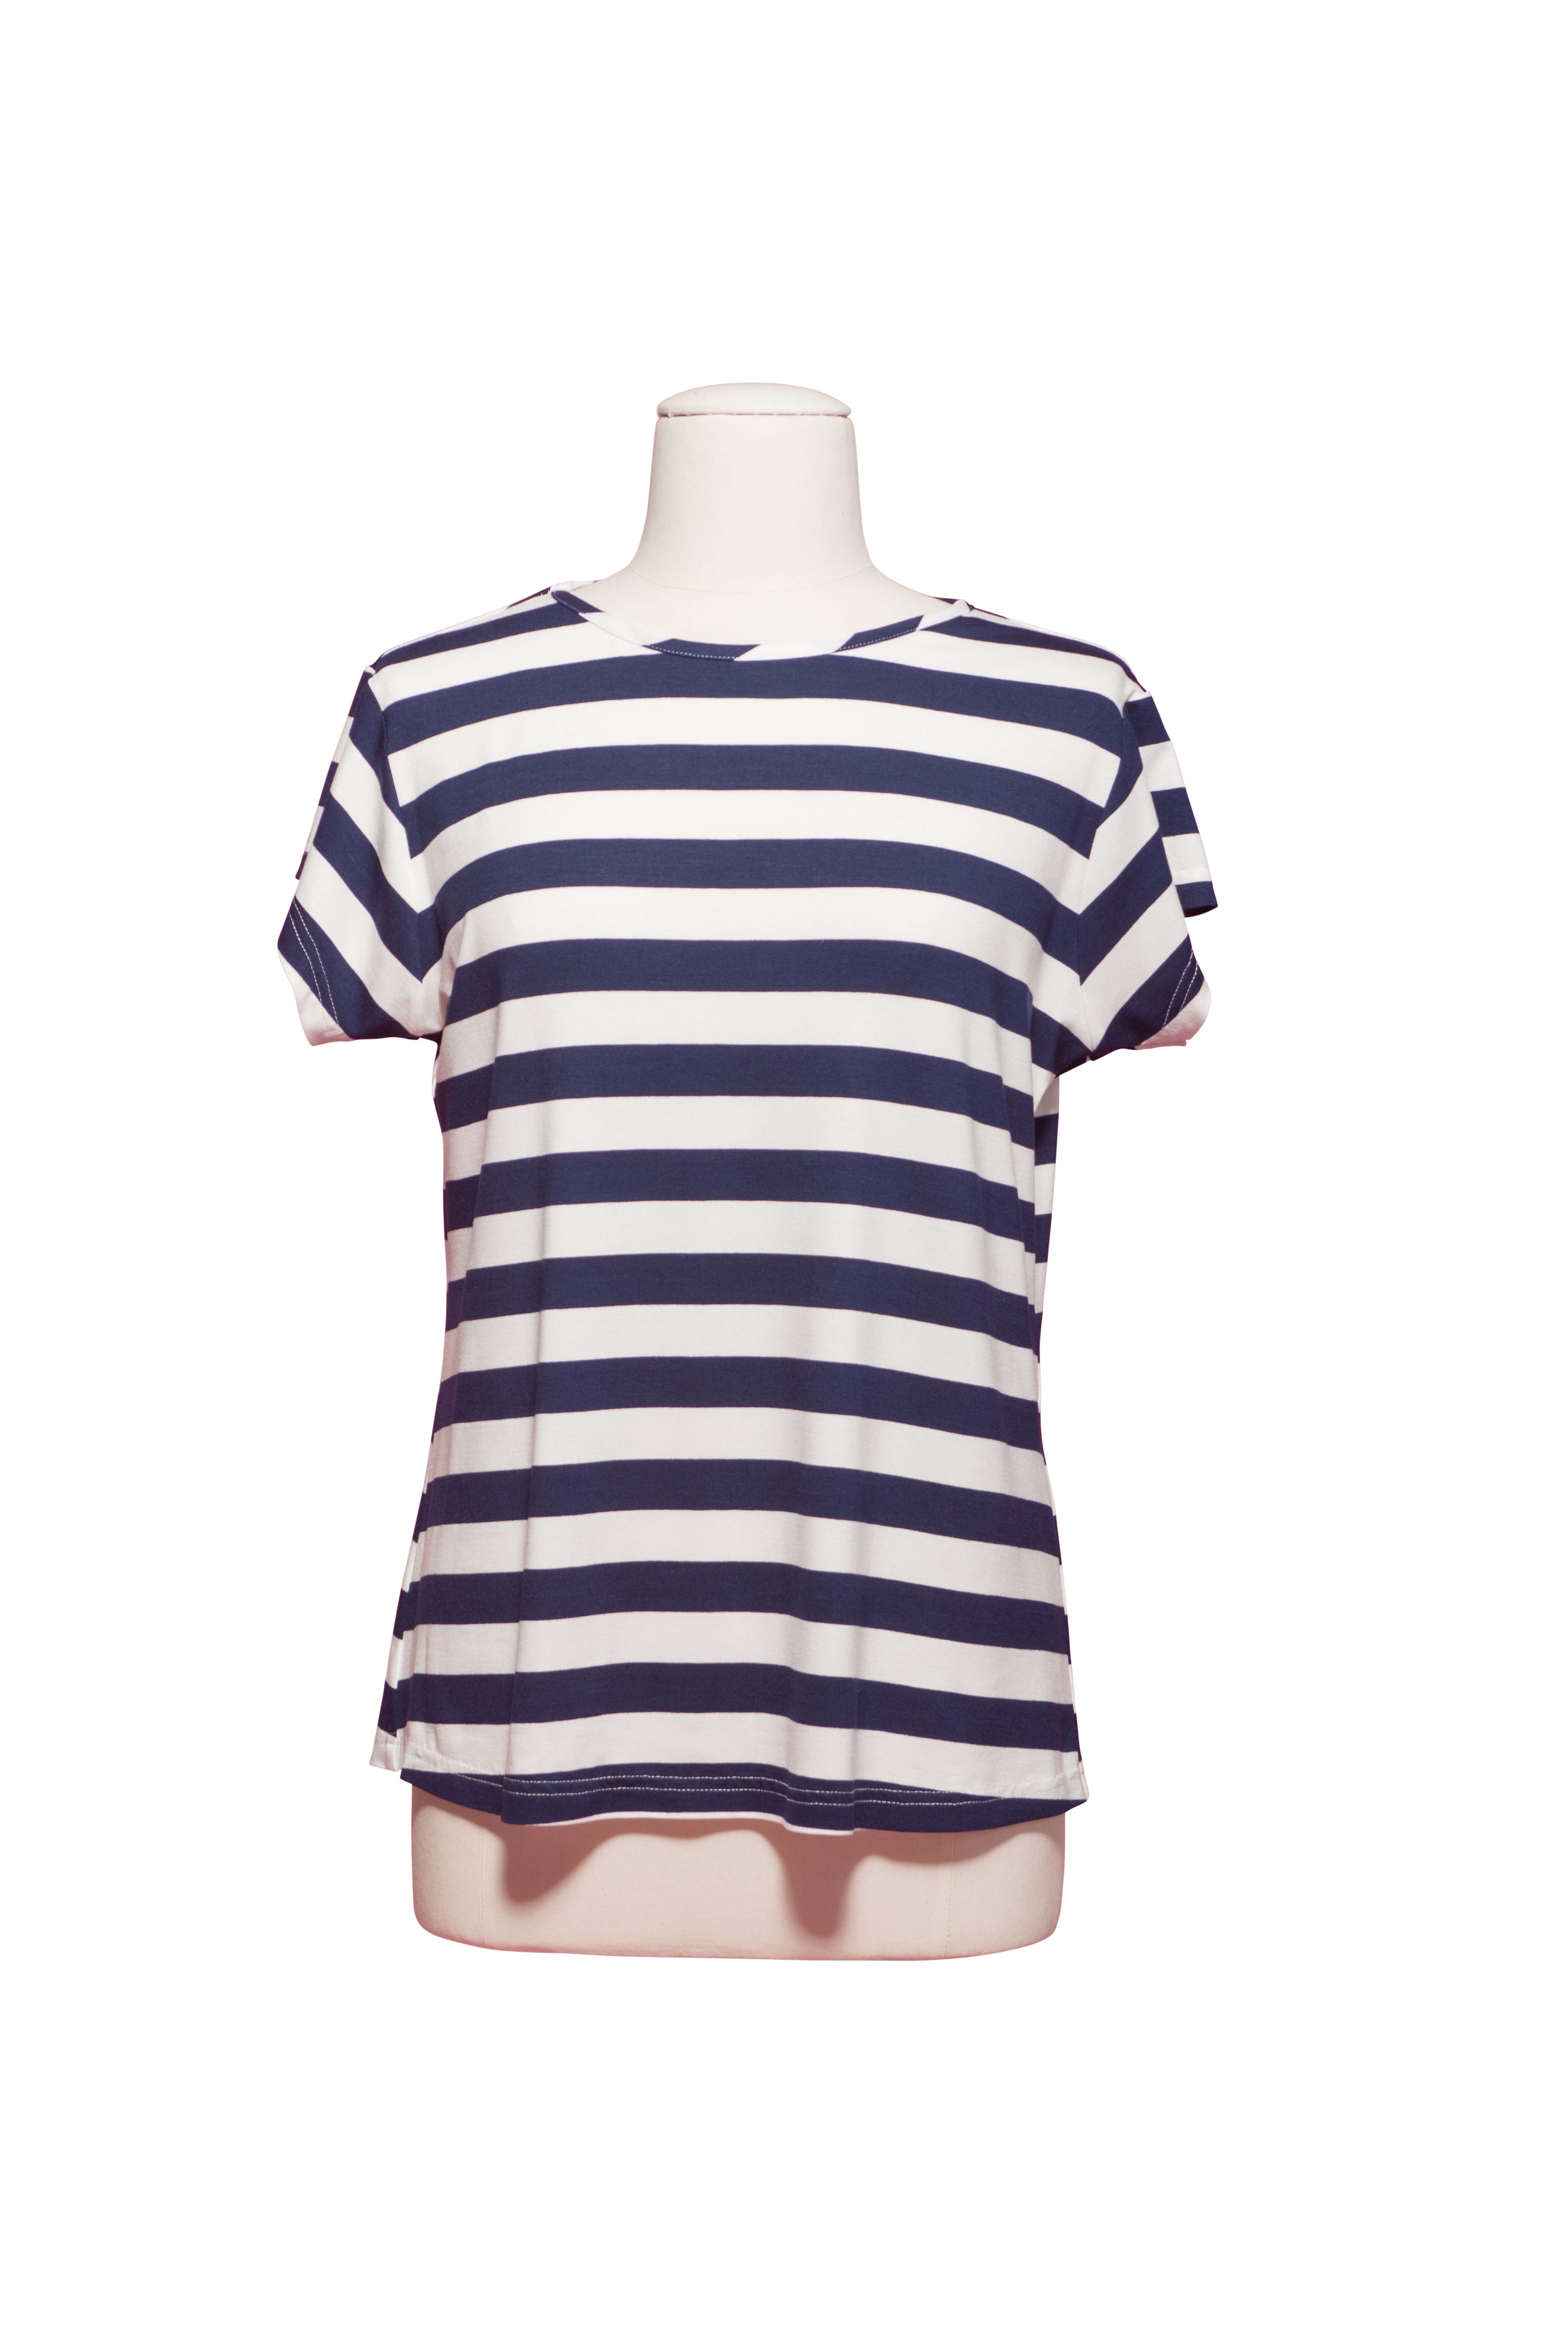 Liann Bellis_Paris Top (Broad Stripe)_$179.00_